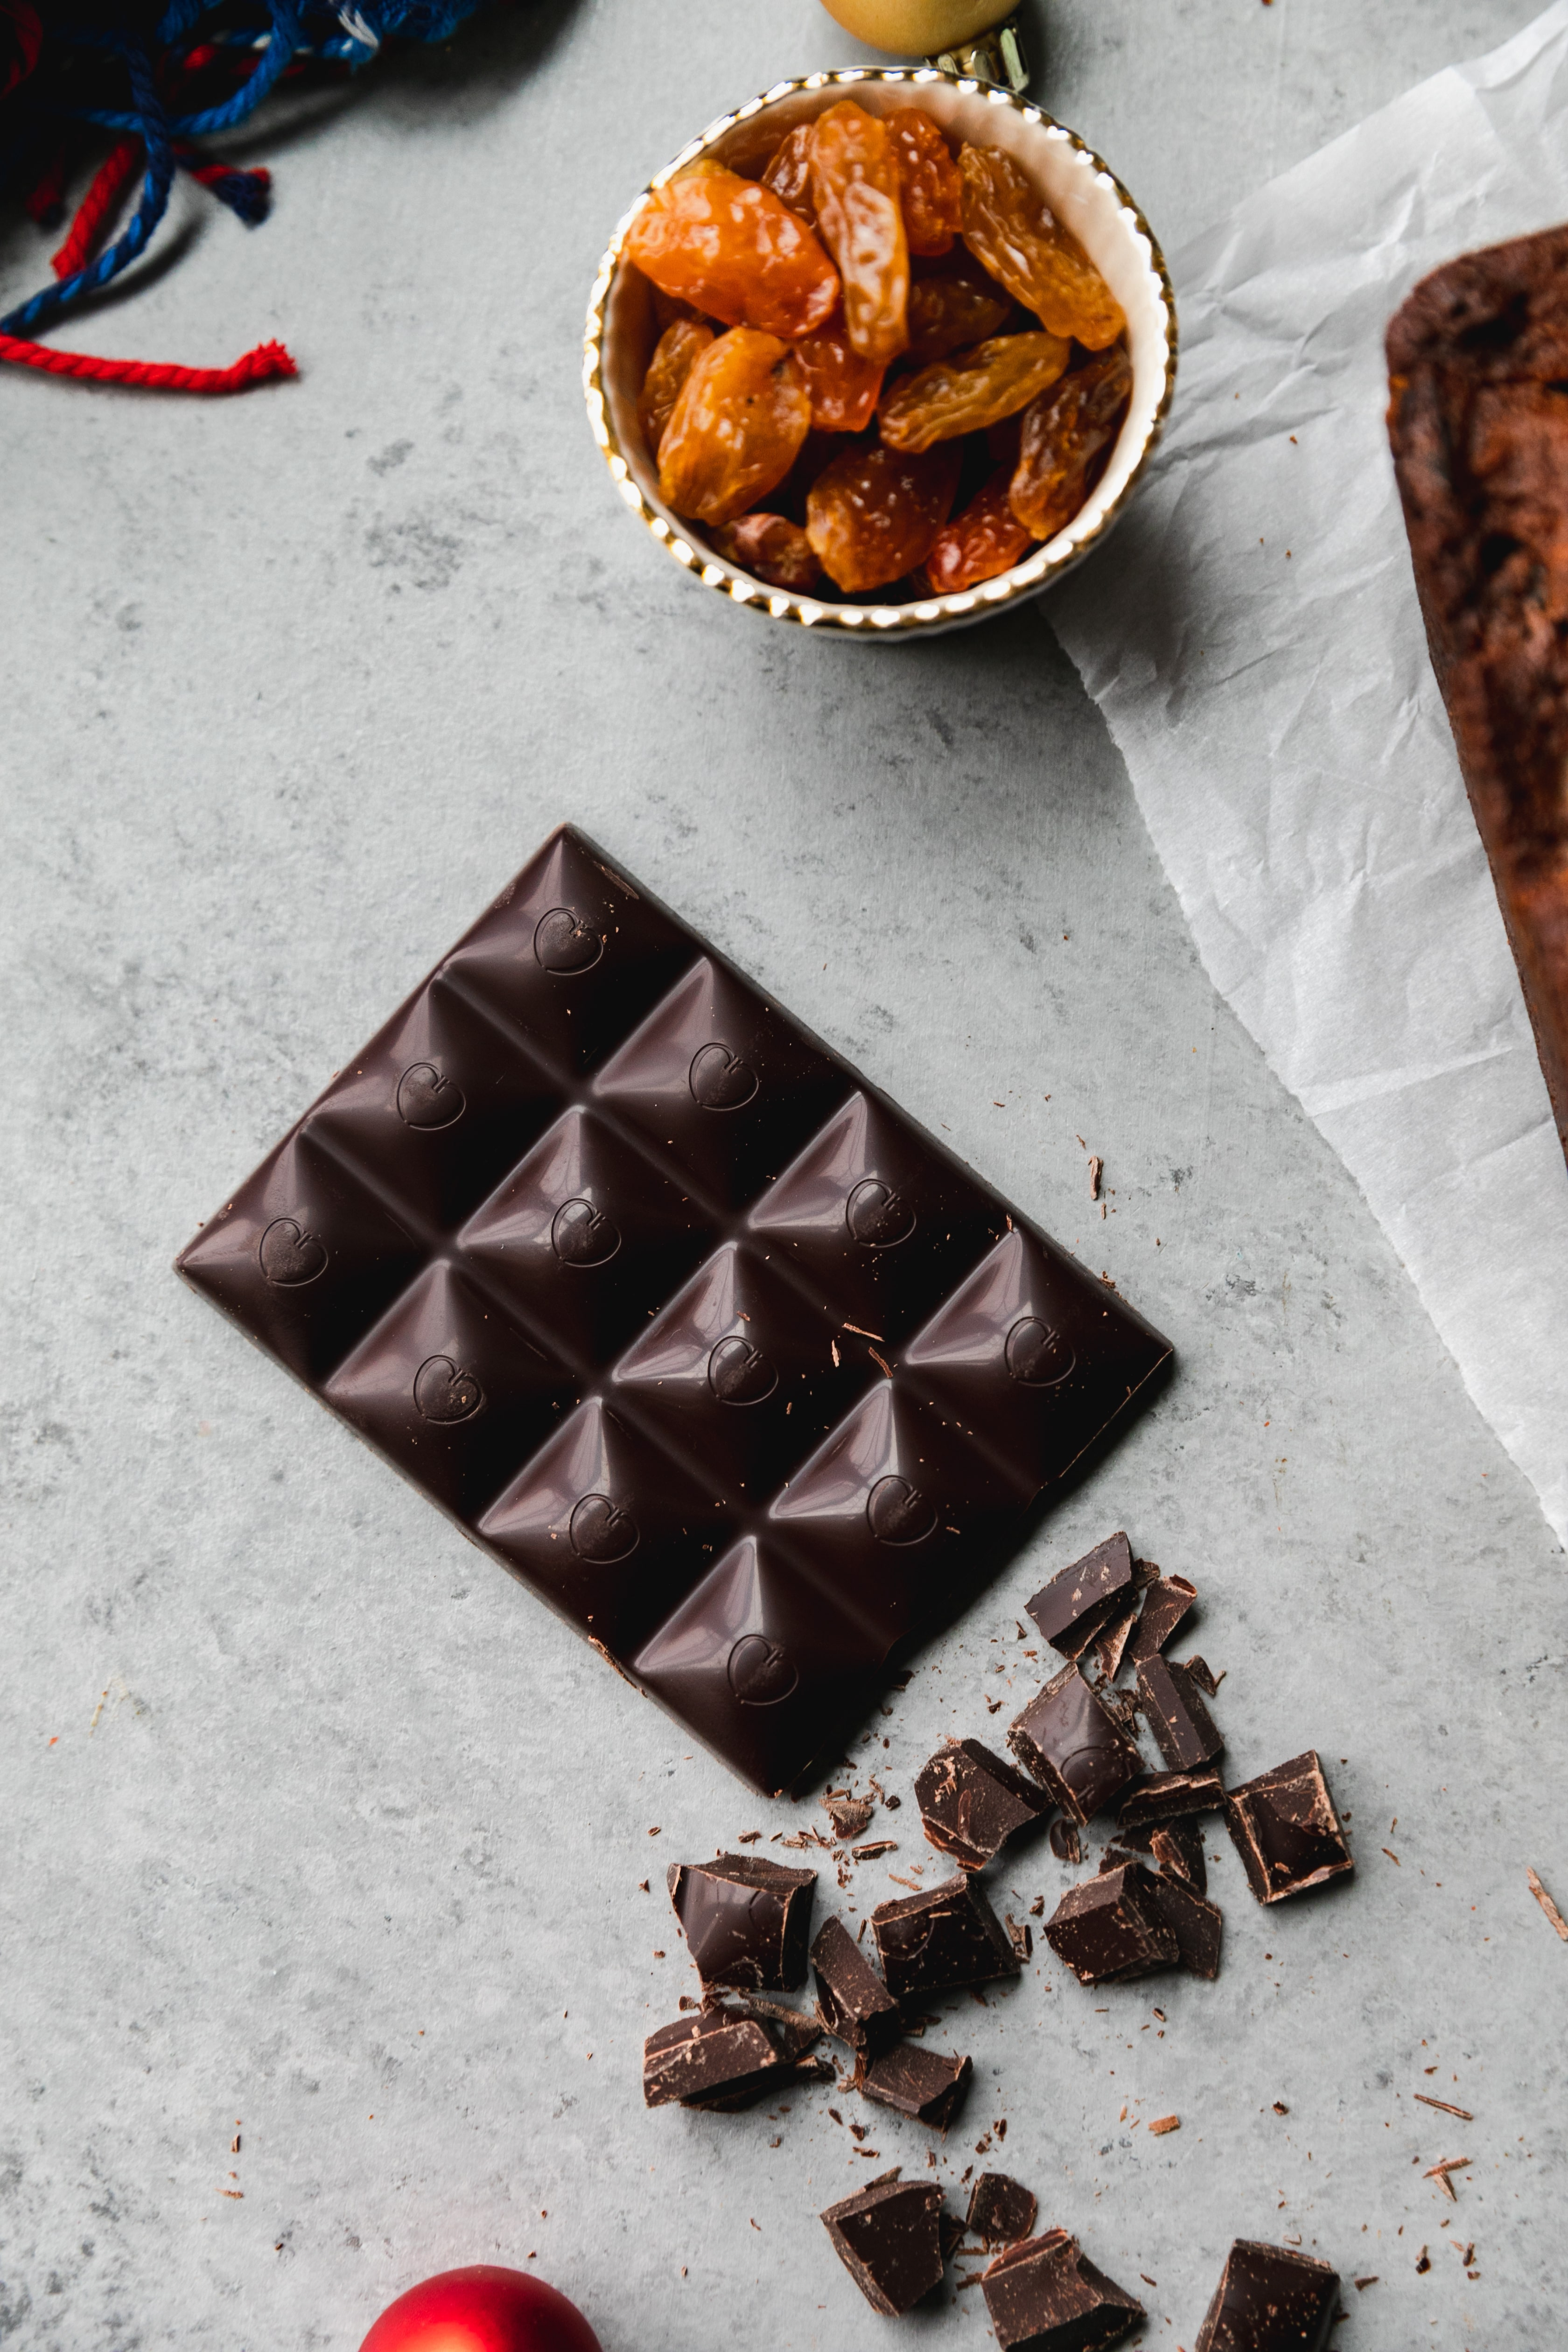 Overhead shot of a bar of dark chocolate and chopped dark chocolate against a grey background